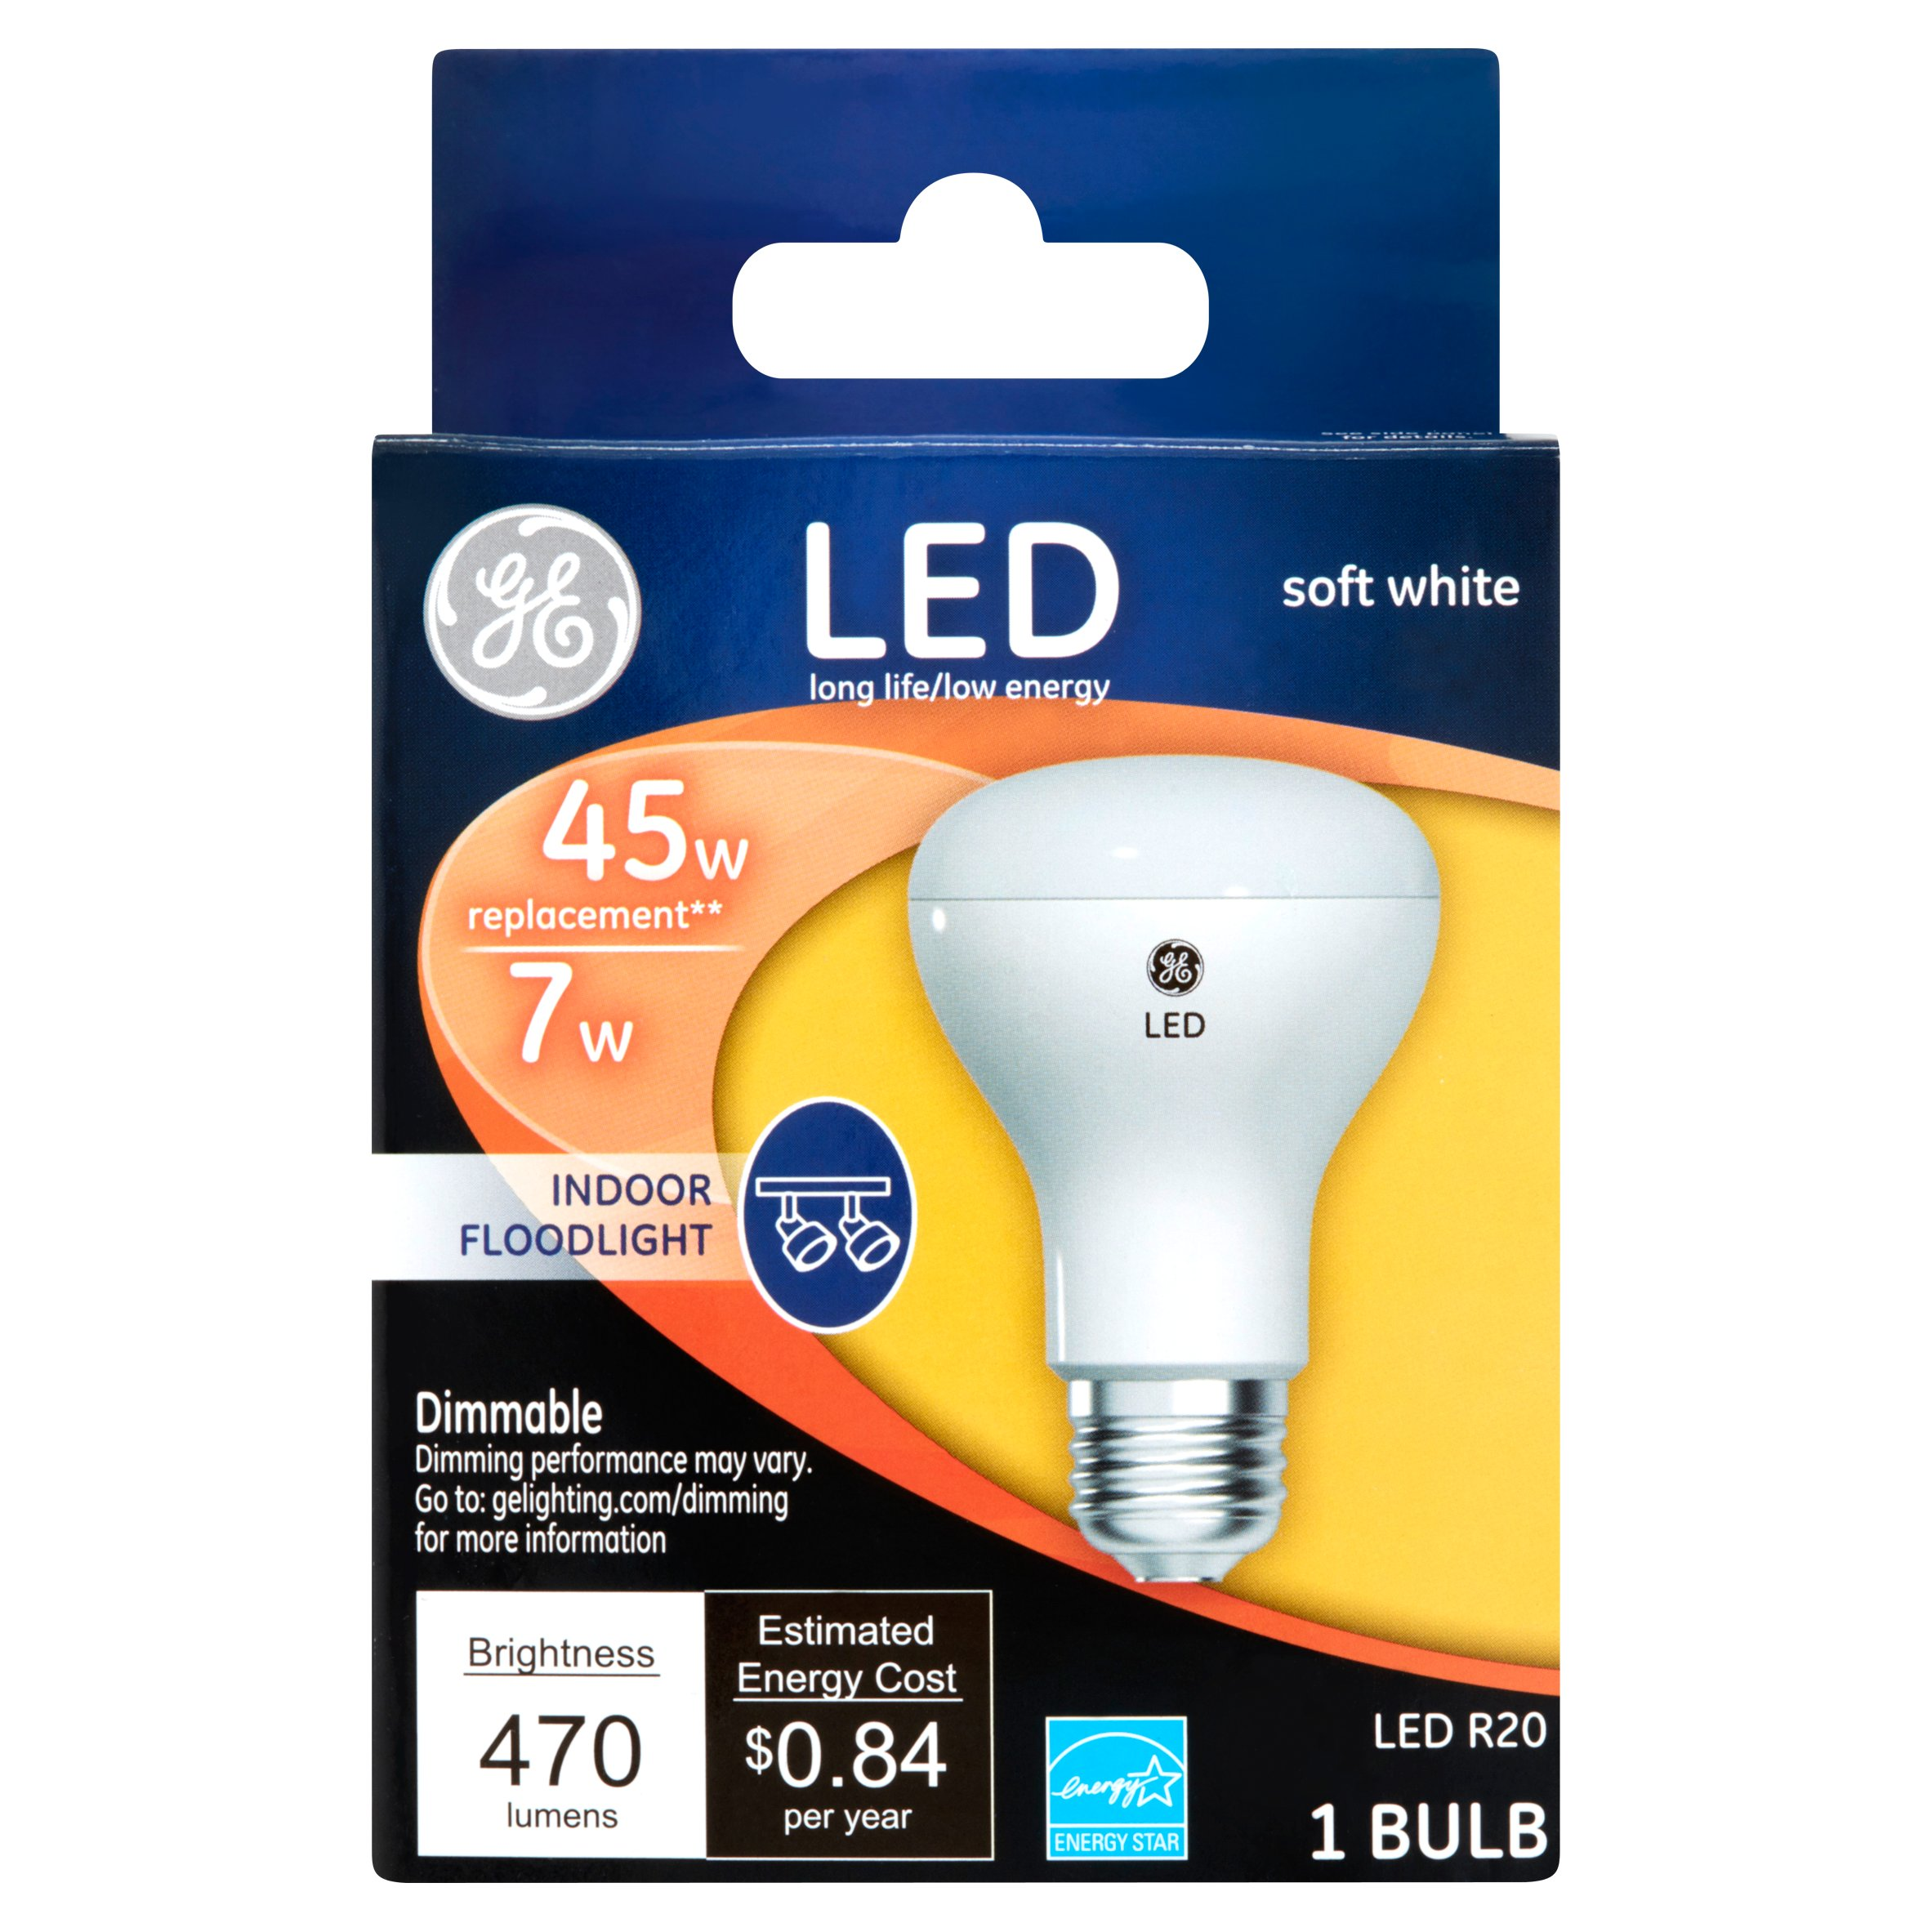 GE LED 45-Watt R20 Short Neck Light Bulb - Soft White